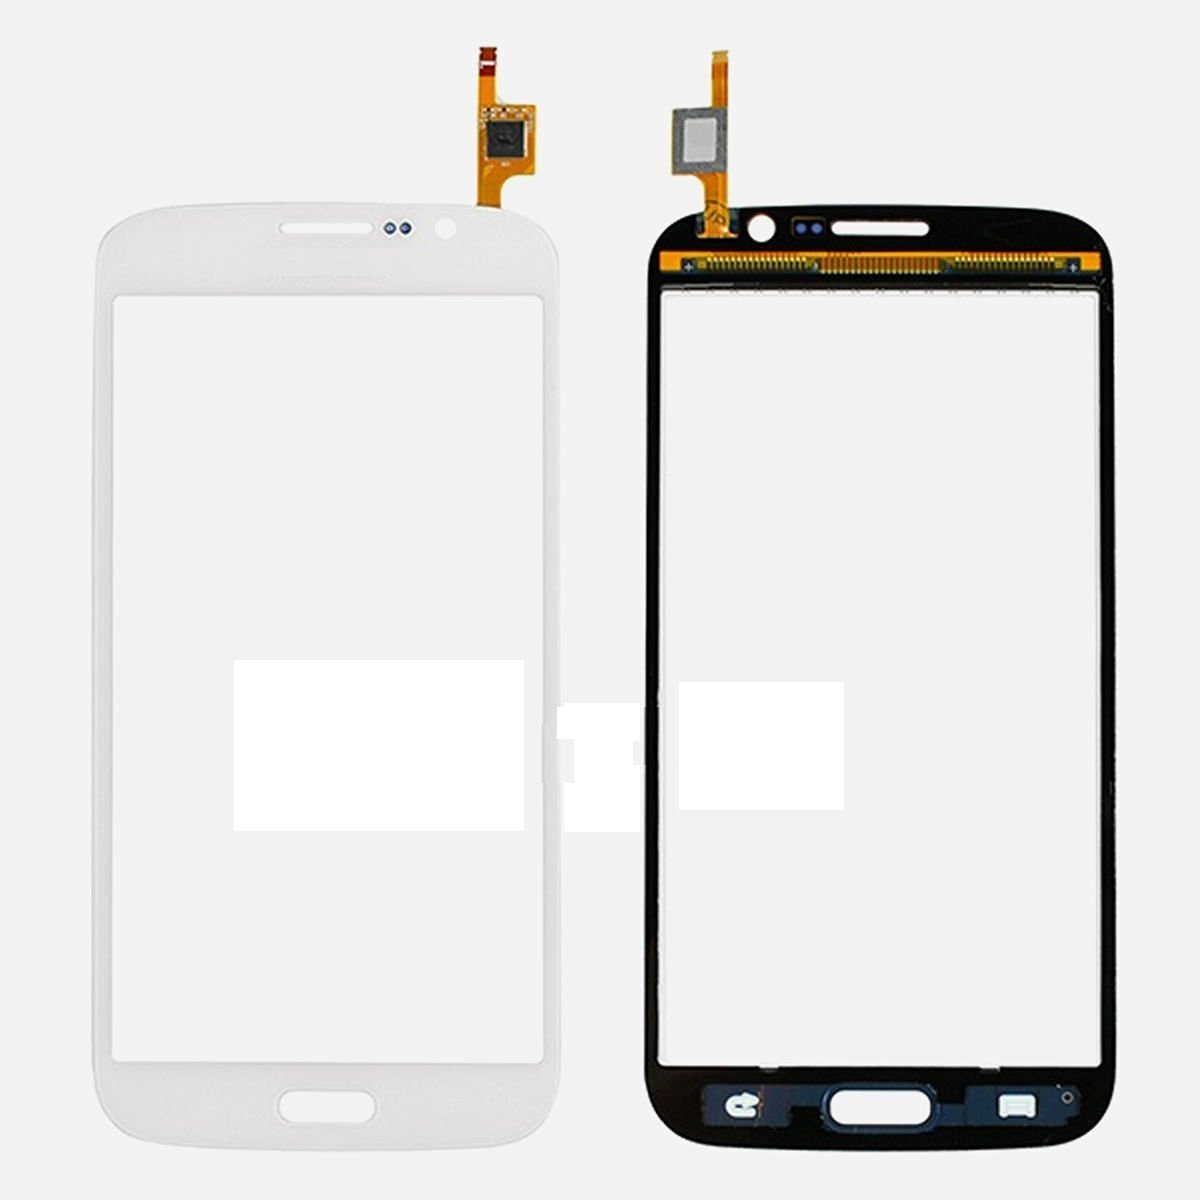 i9152 amy Amy WJH LCD Screen for Galaxy Mega 5.8